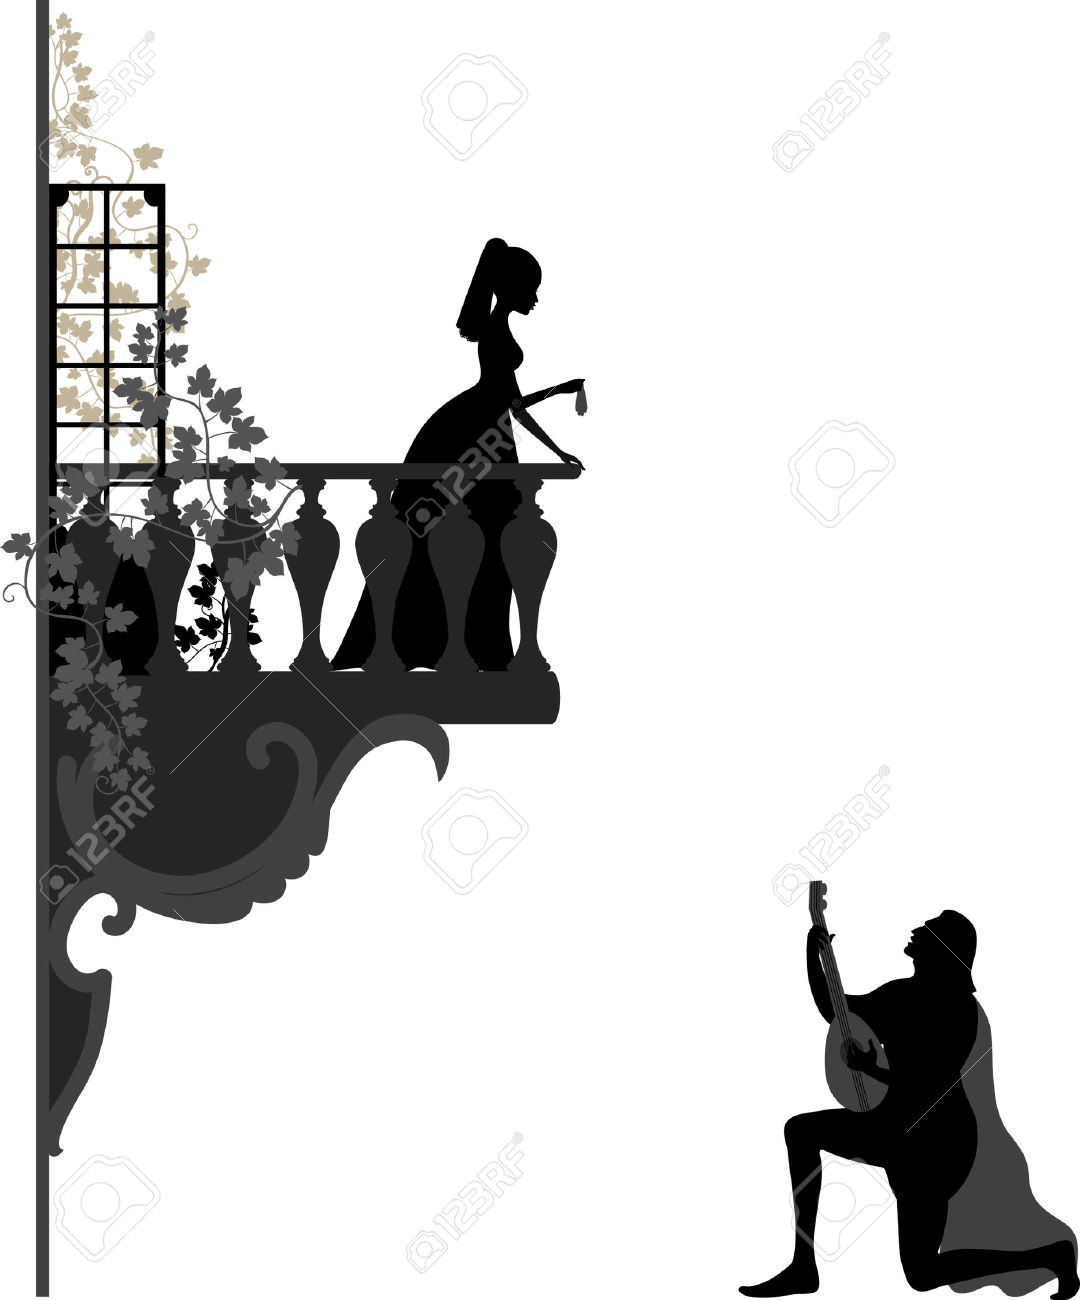 Romeo and juliet clipart svg black and white Romeo and juliet balcony scene clipart - ClipartFest svg black and white